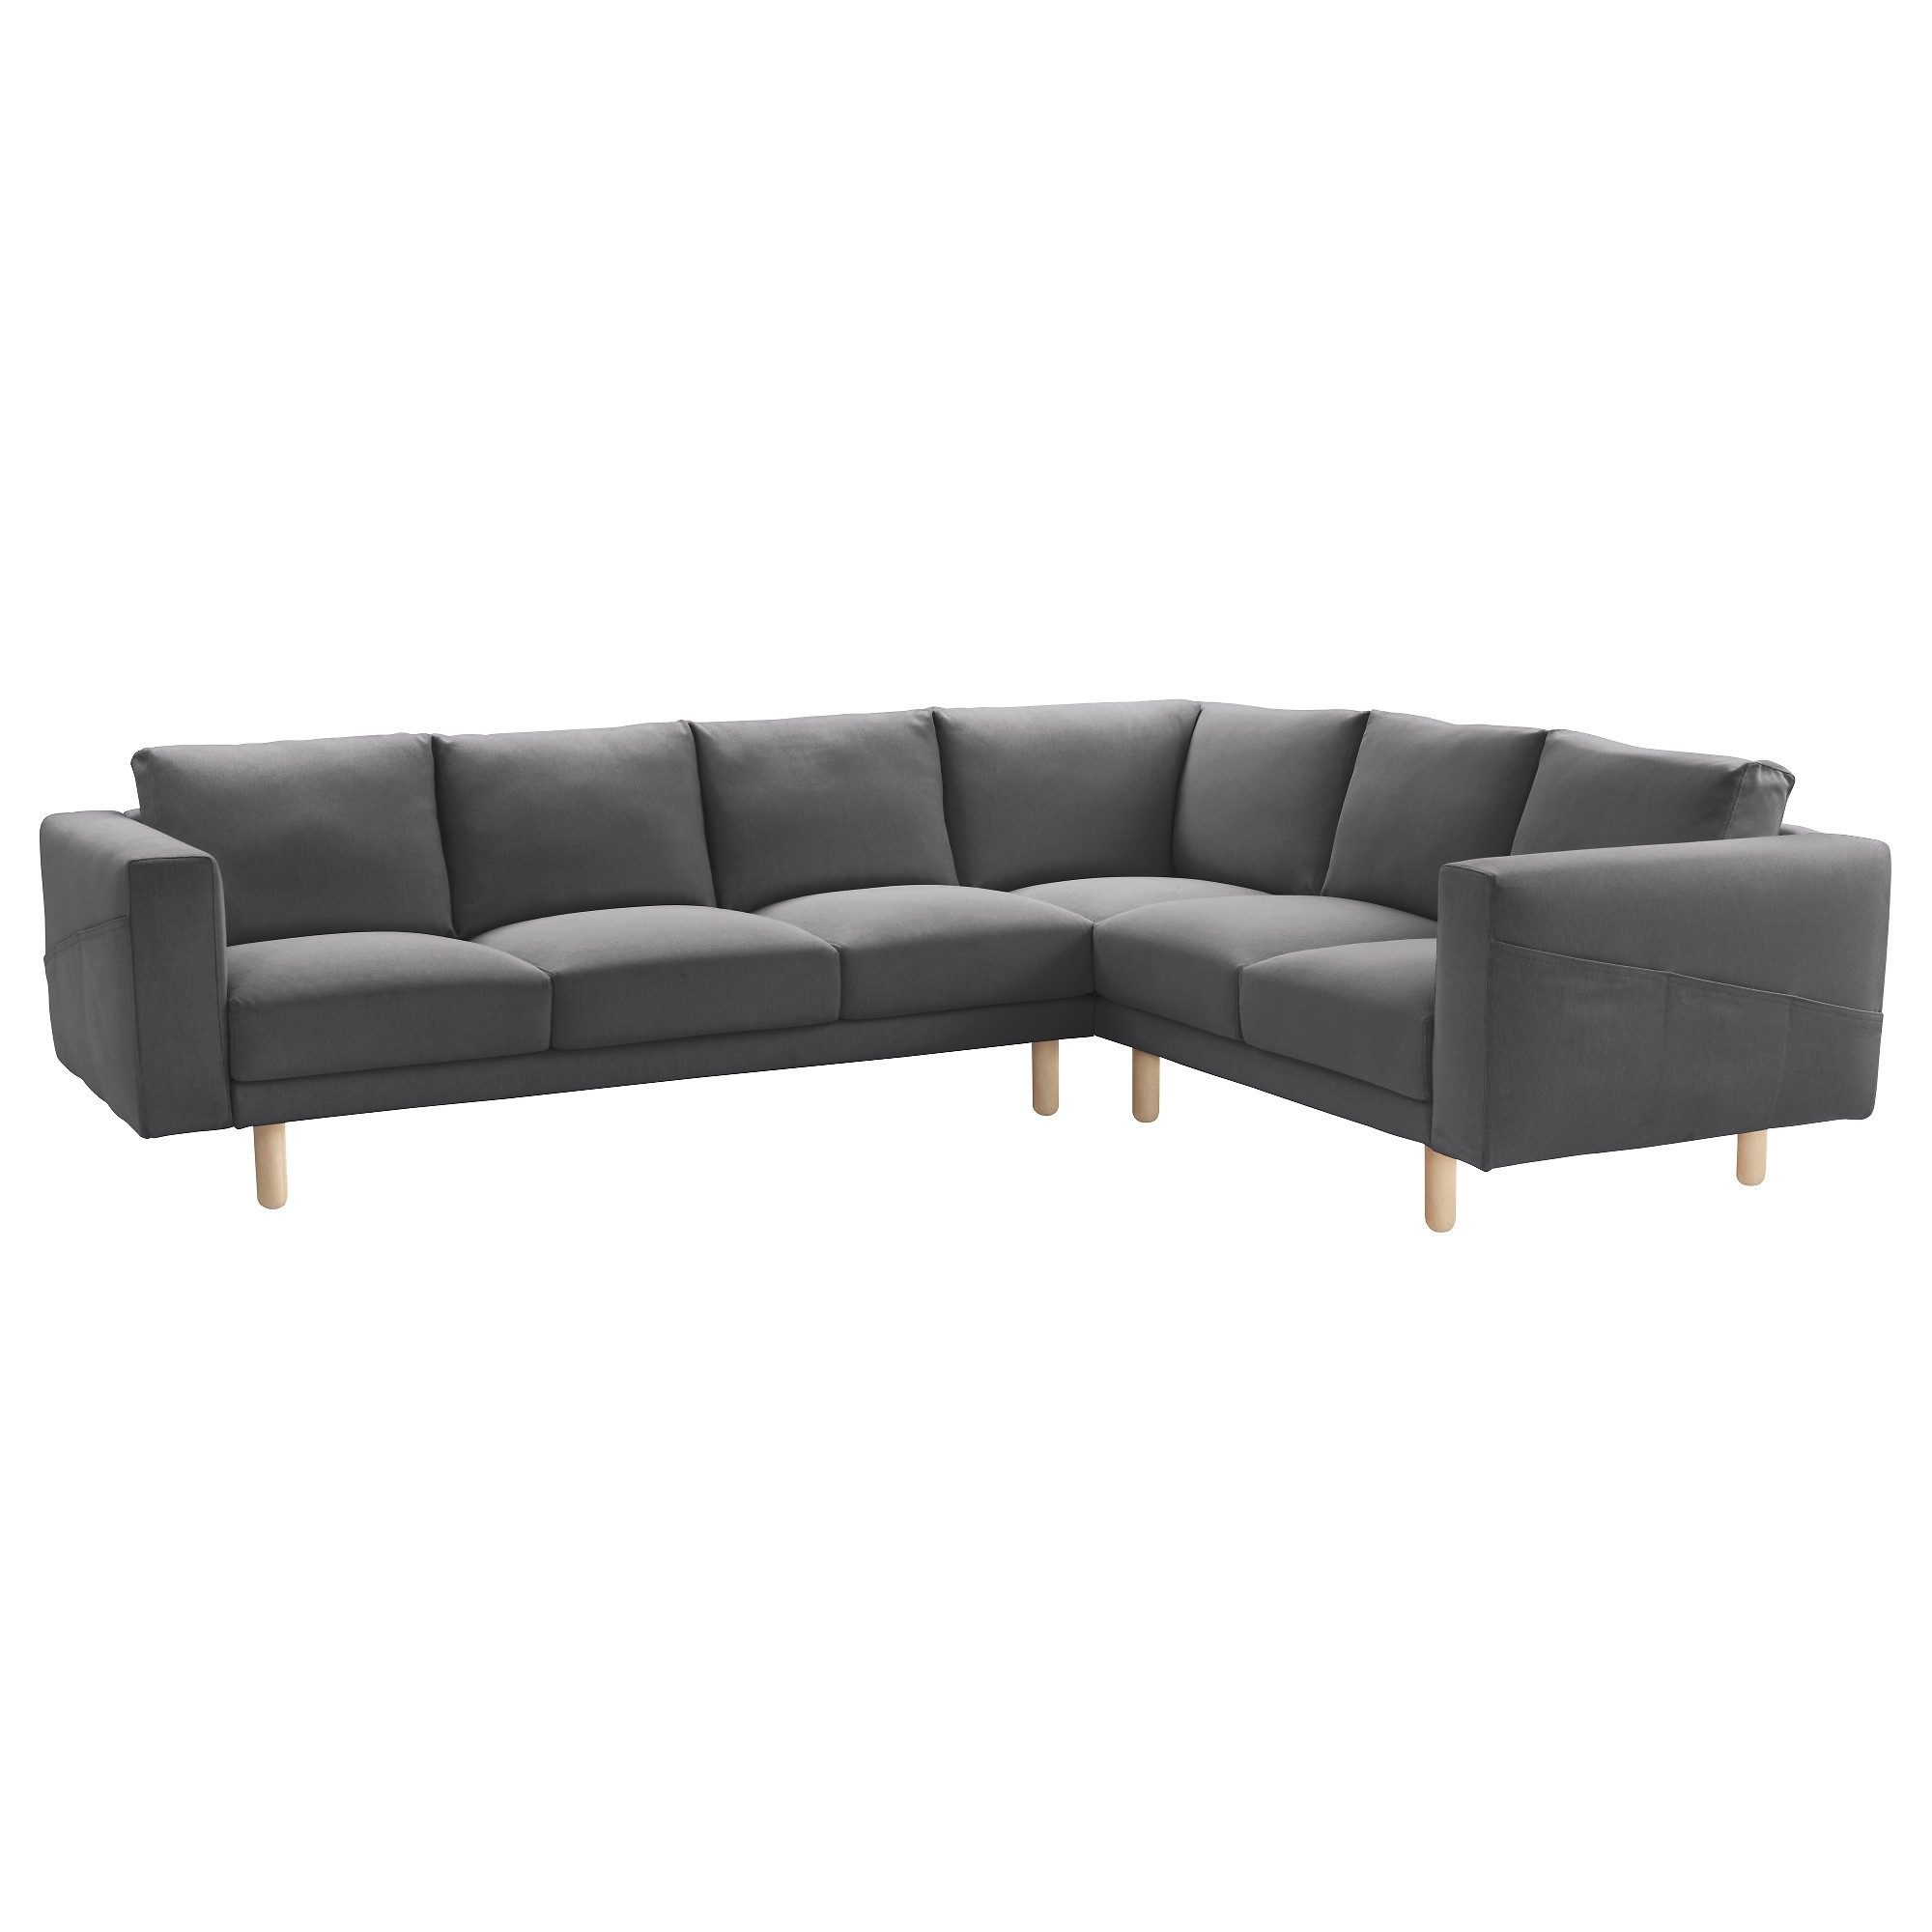 Ikea Small Sofas Pertaining To Current Norsborg Sectional, 5 Seat Corner – Finnsta Dark Gray, Birch – Ikea (View 5 of 15)